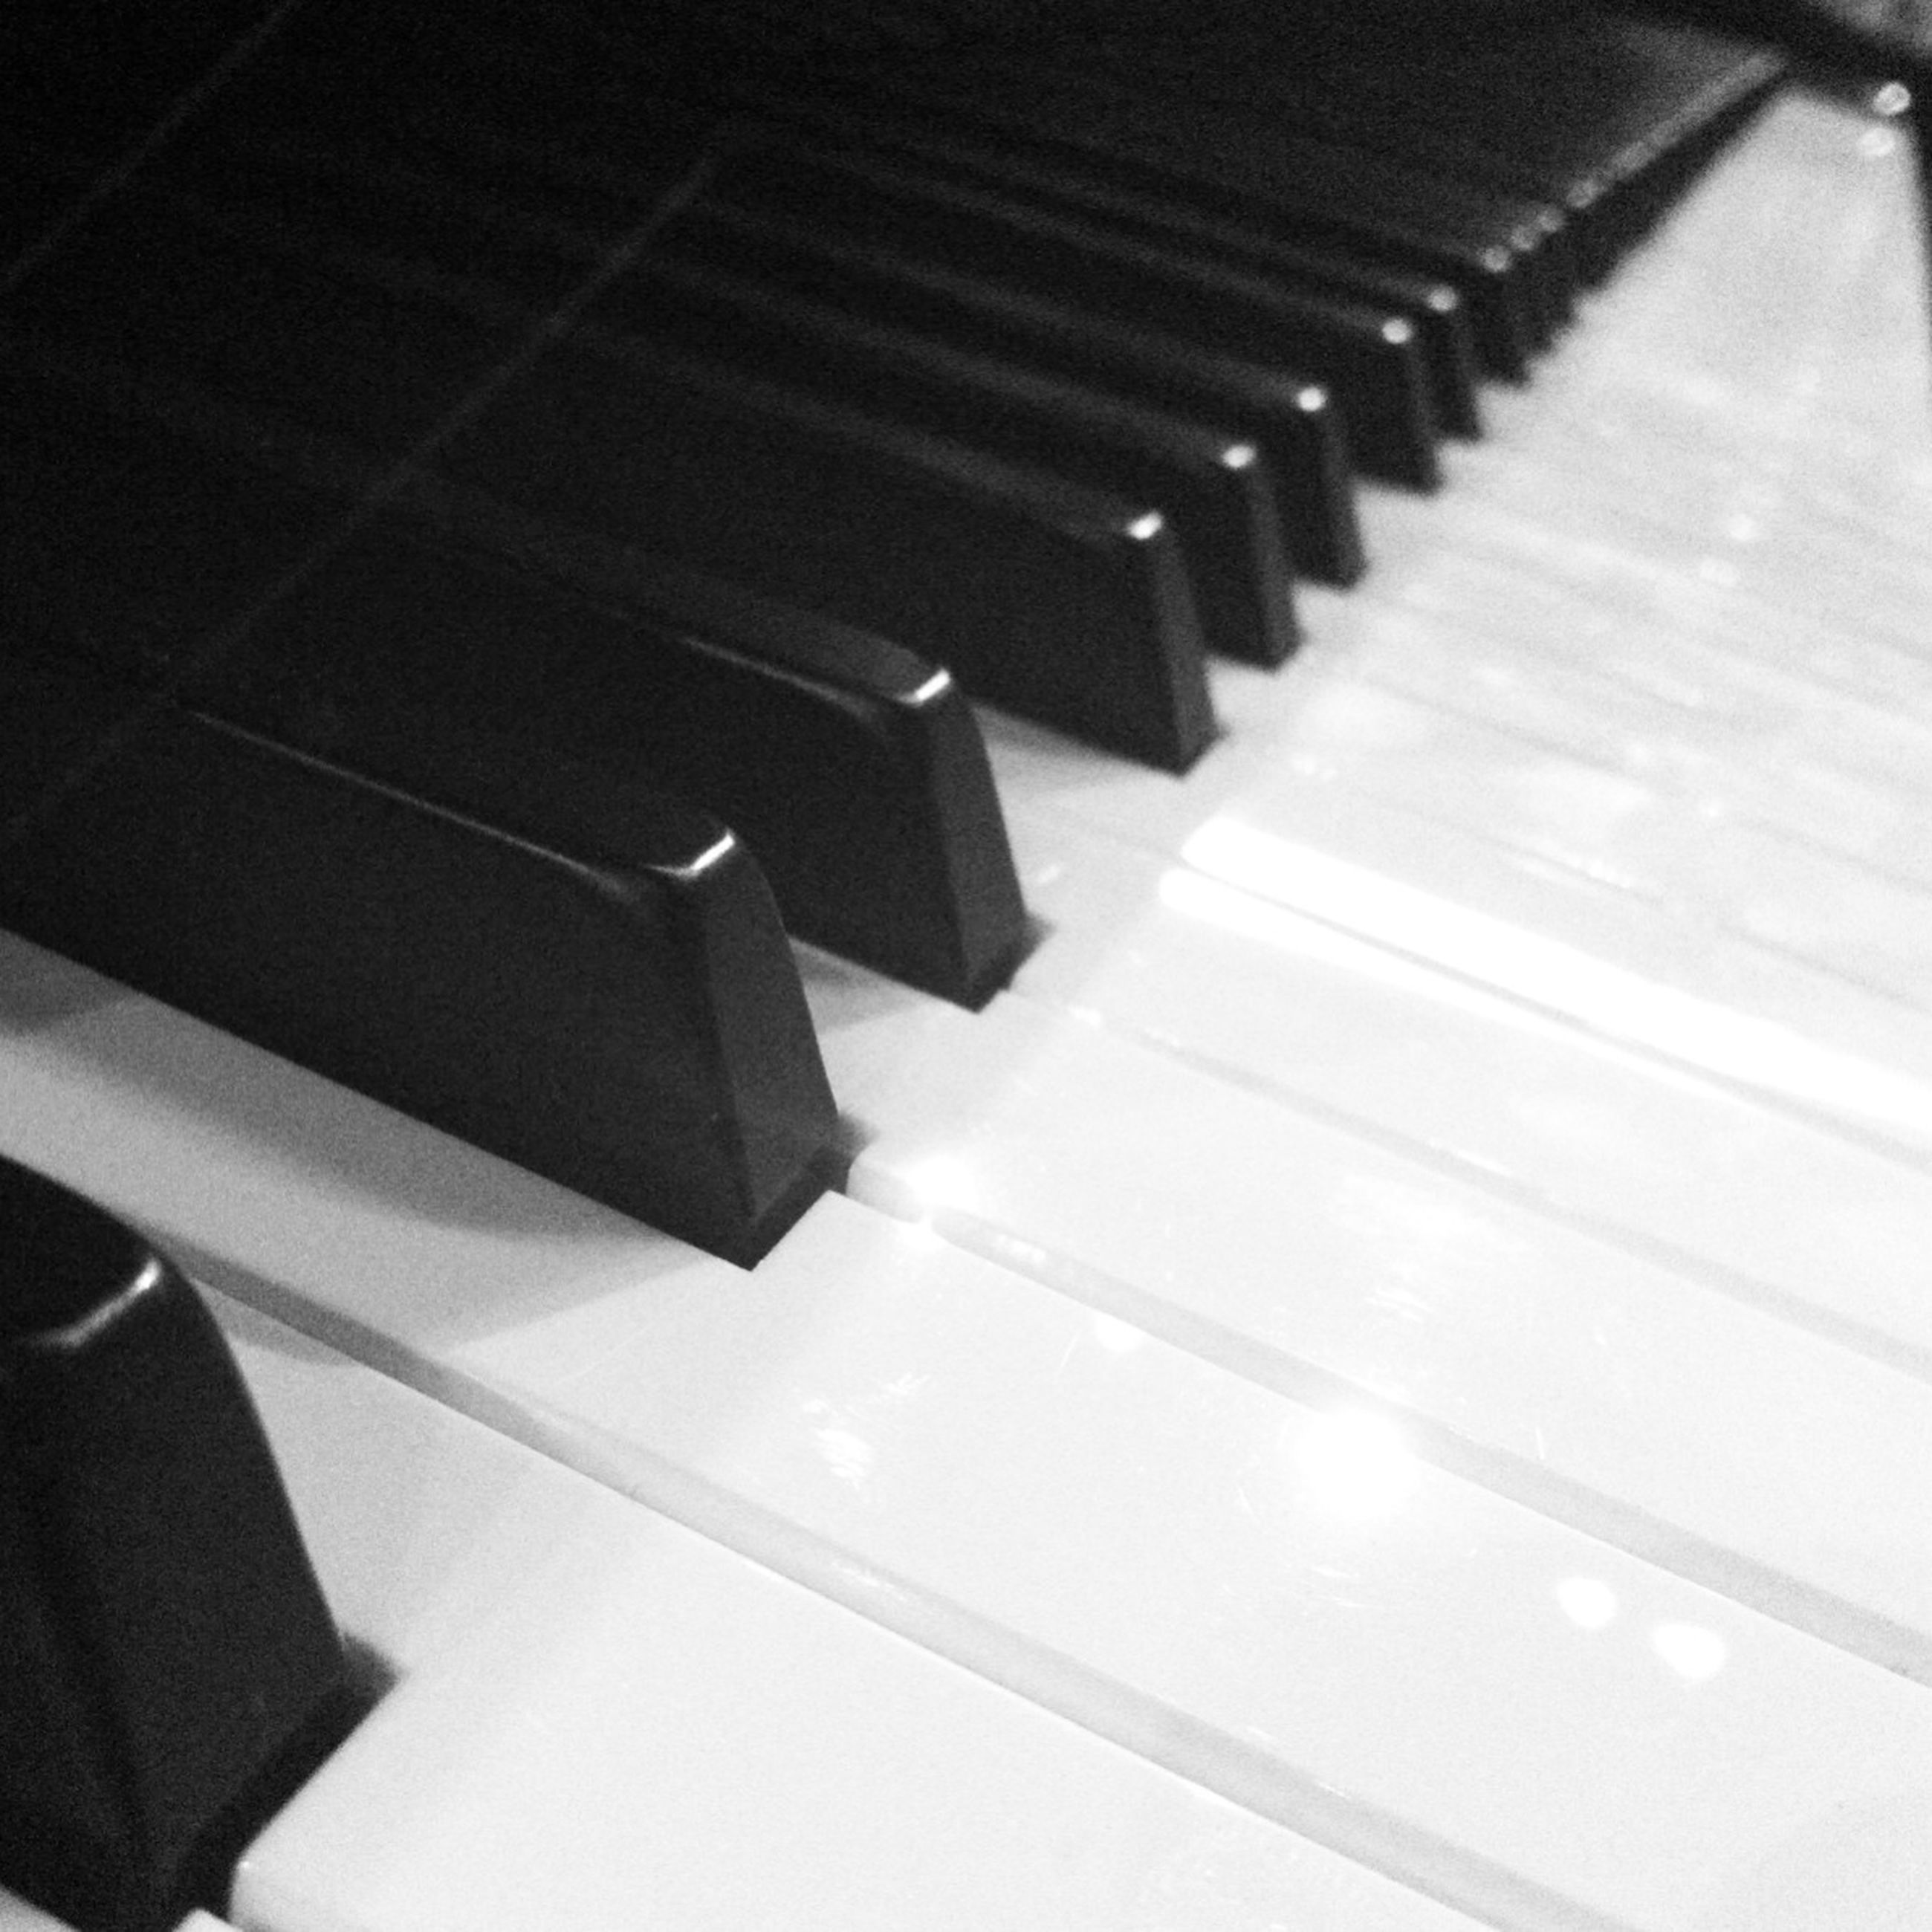 indoors, piano key, music, close-up, arts culture and entertainment, piano, musical instrument, in a row, still life, musical equipment, high angle view, selective focus, repetition, table, technology, pencil, order, part of, no people, large group of objects